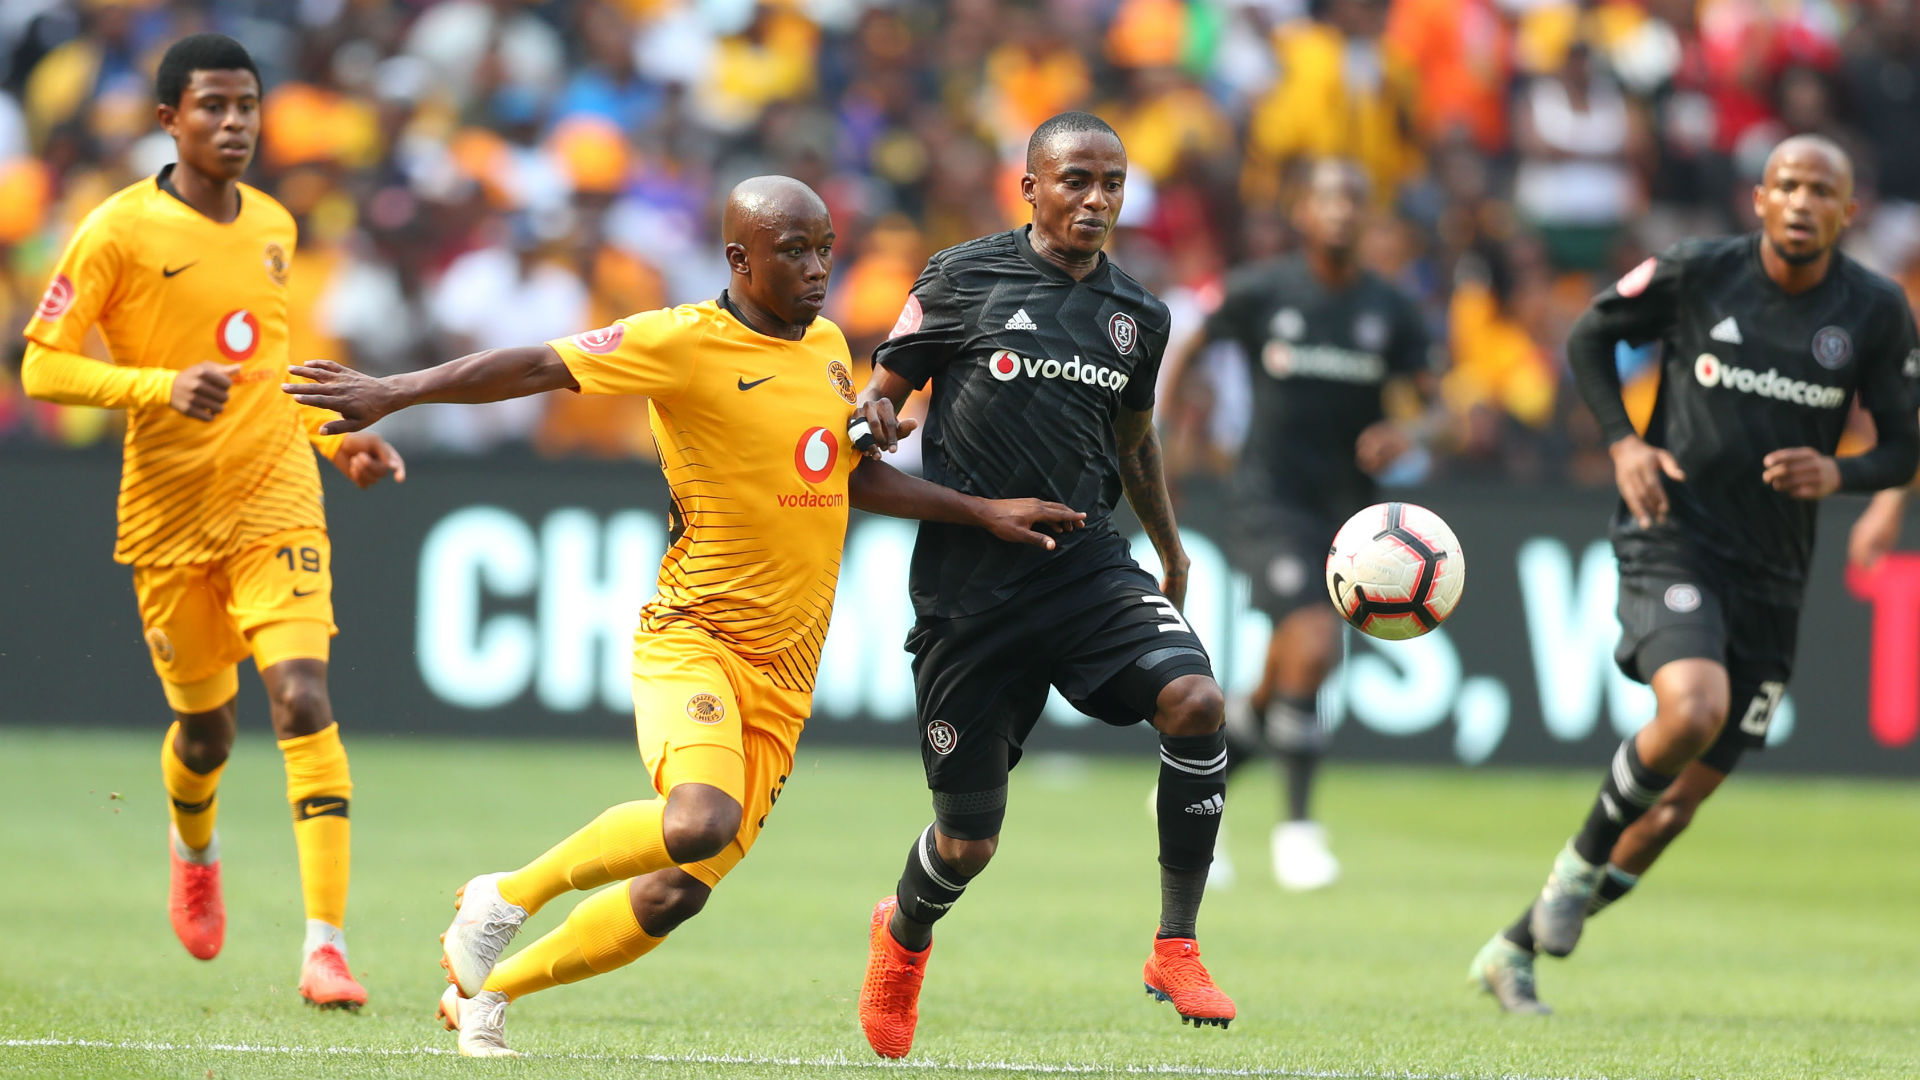 Kaizer Chiefs v Orlando Pirates, Thembinkosi Lorch and Siphosakhe, Ntiya-Ntiya, February 2019